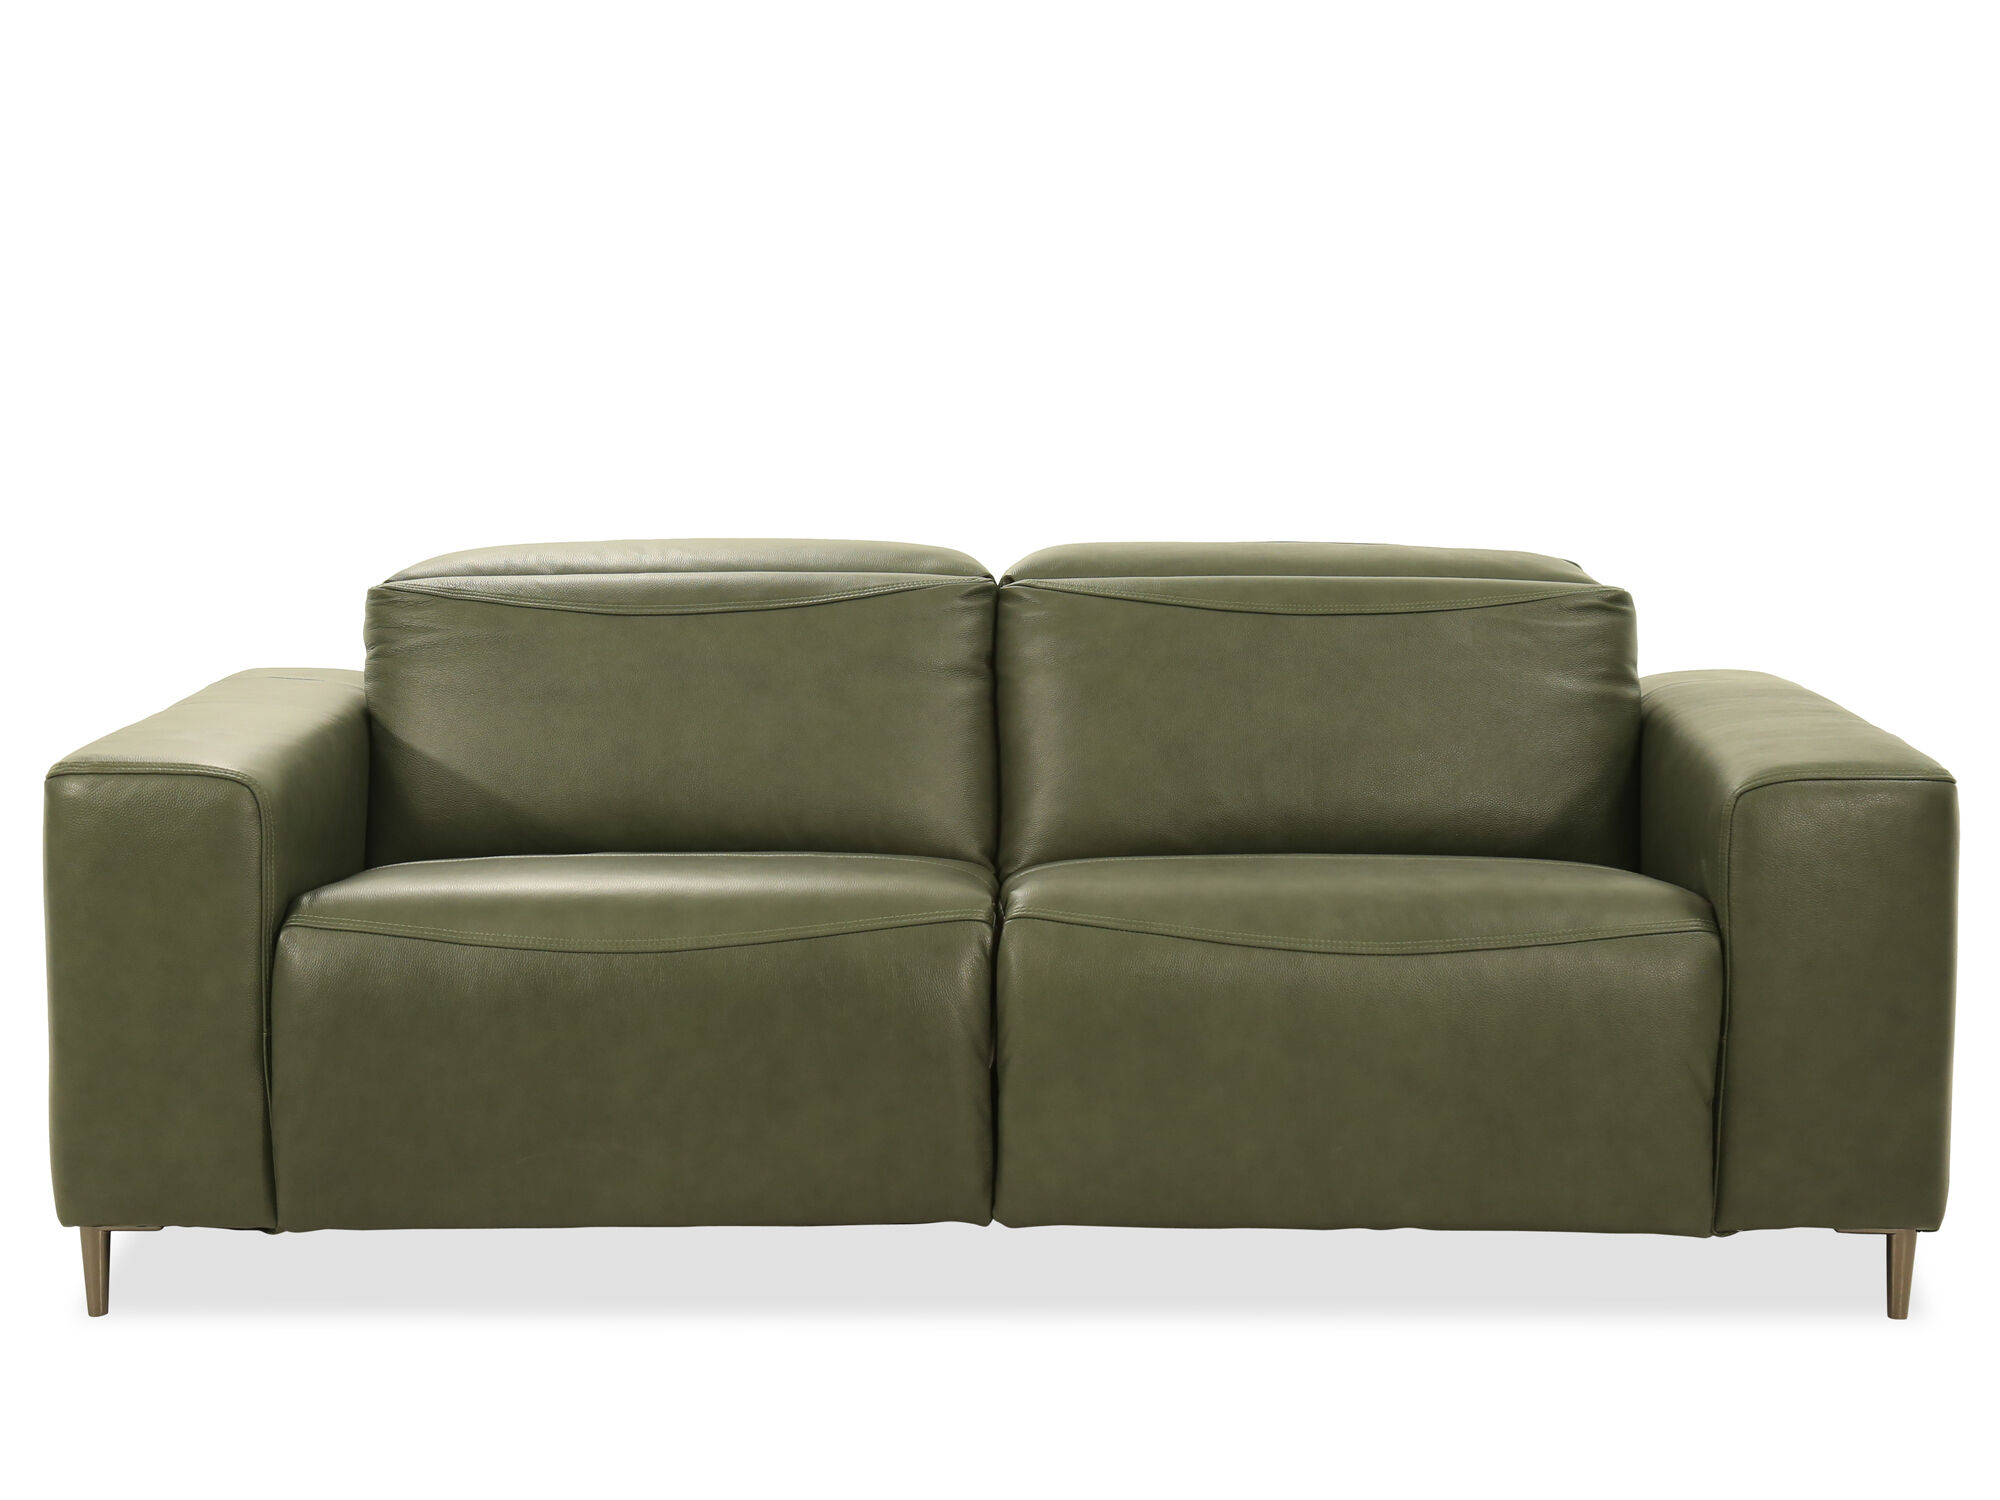 Power Reclining Leather Sofa in Green | Mathis Brothers Furniture